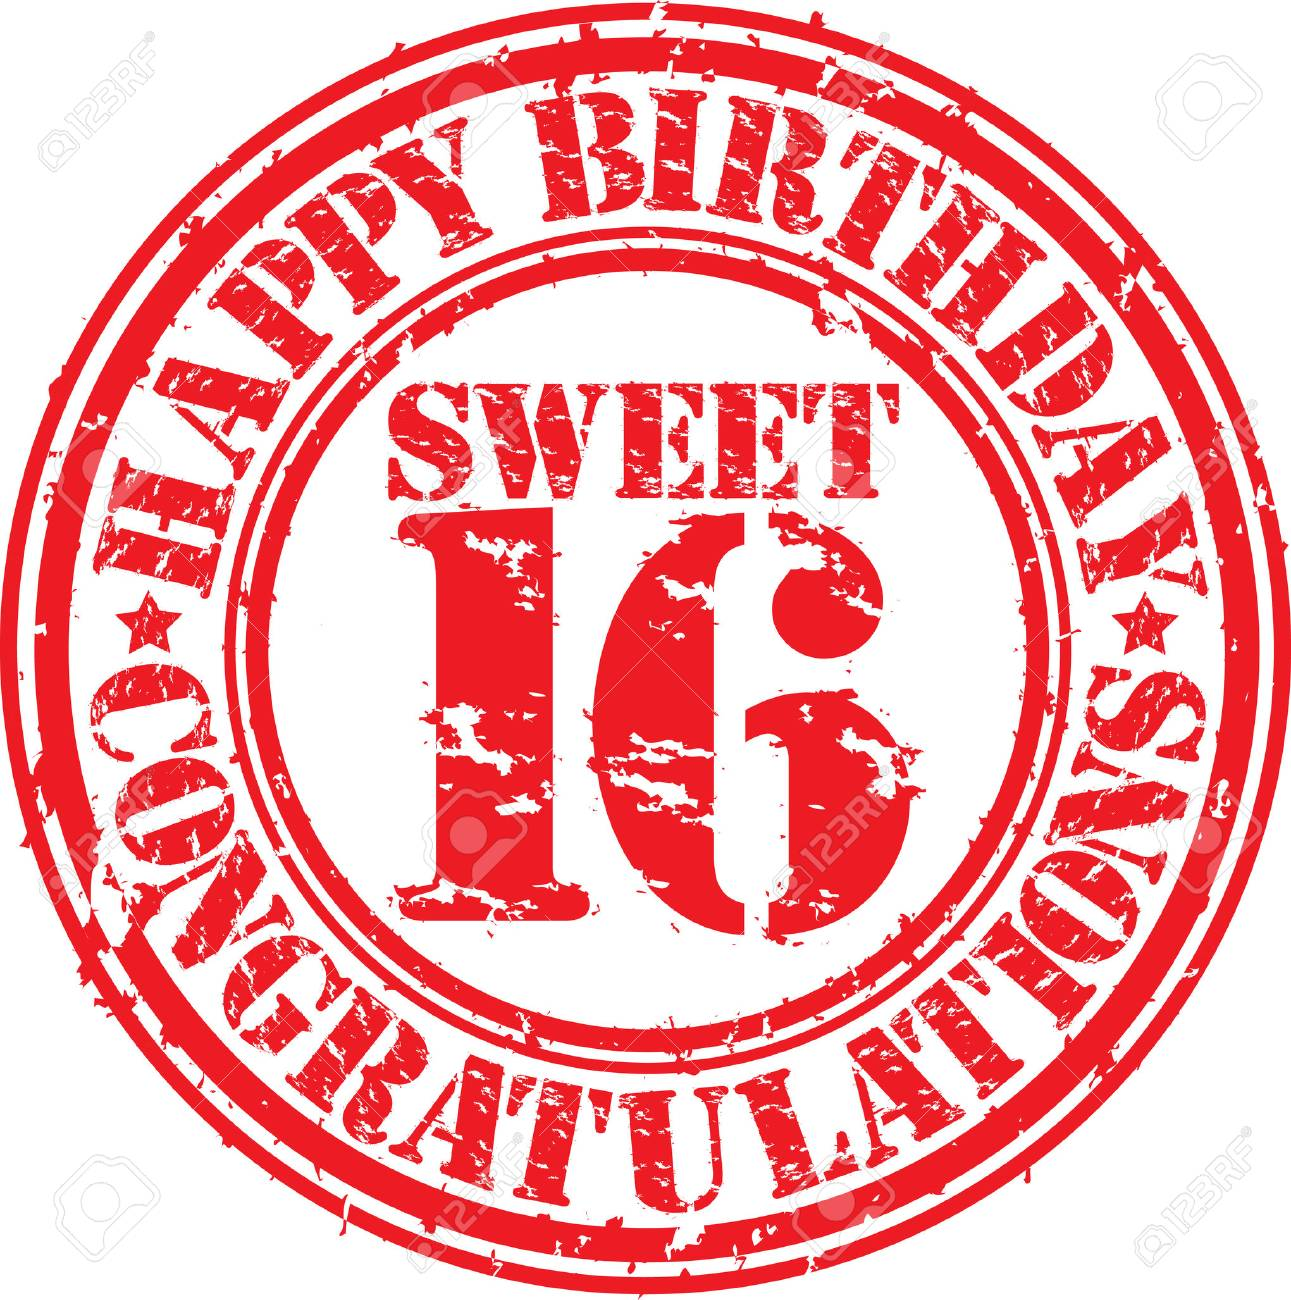 Image result for happy birthday sweet 16